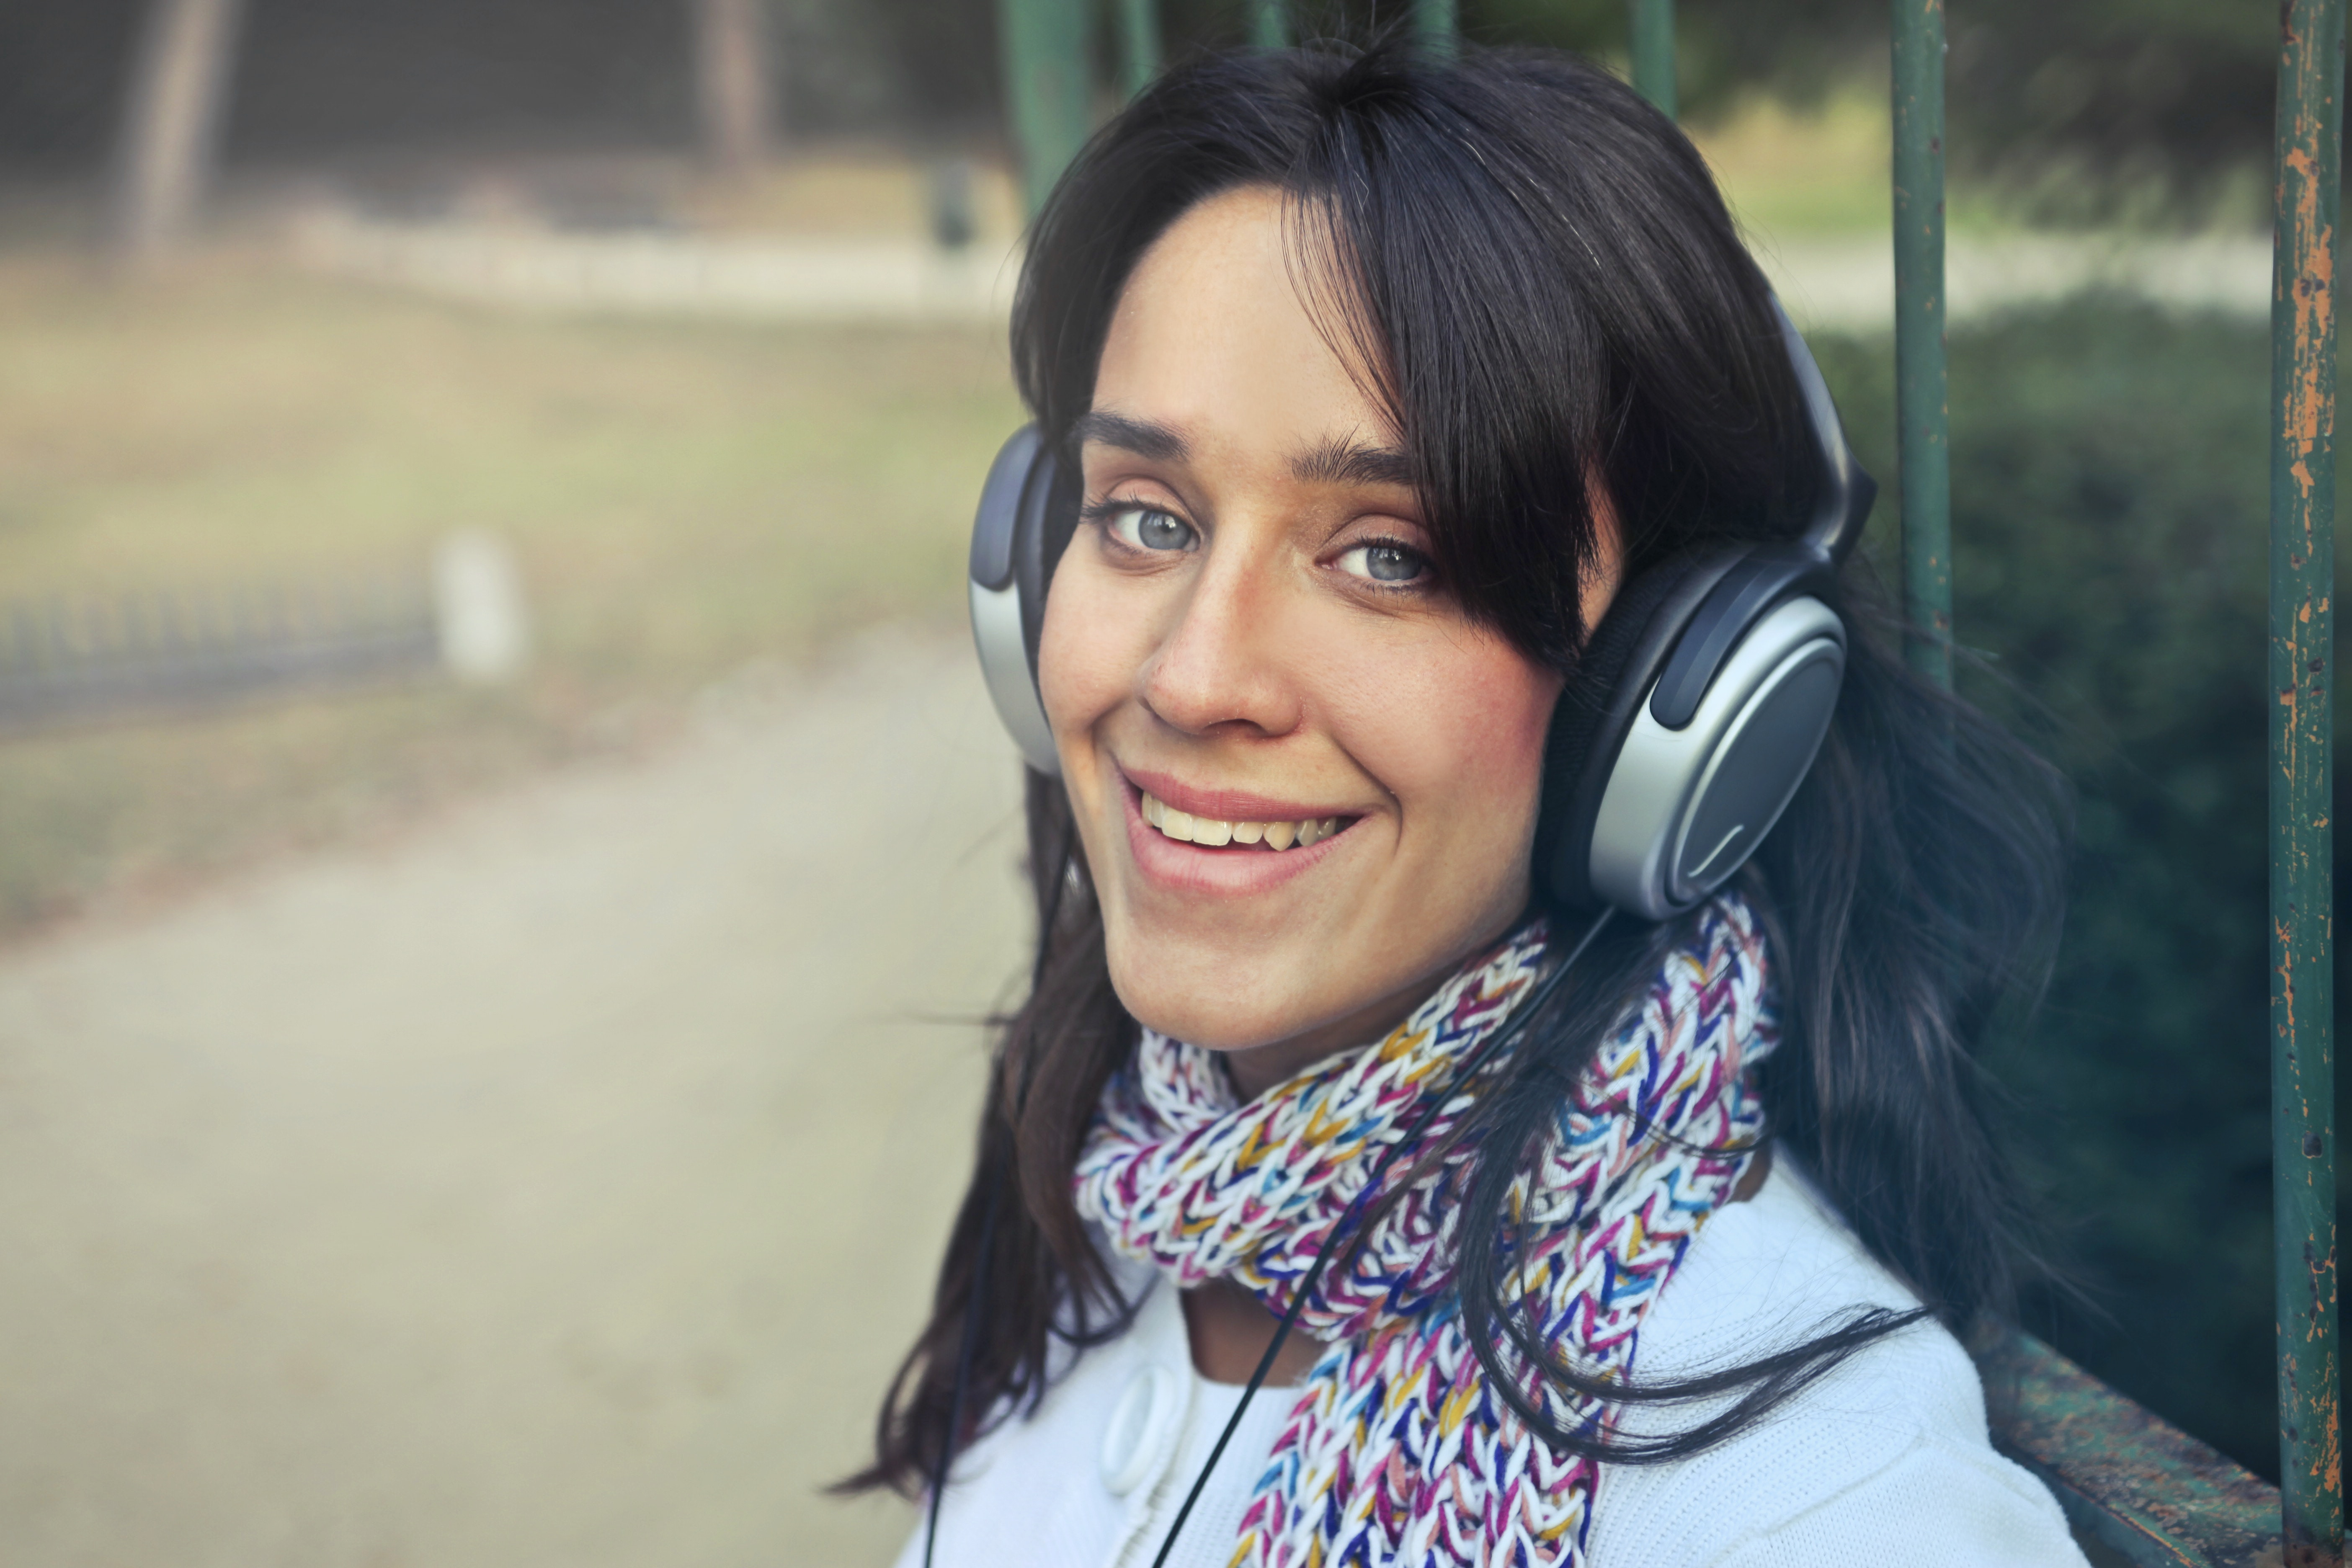 Woman Wearing Headphones With Scarf, Adult, Pretty, Outside, Park, HQ Photo